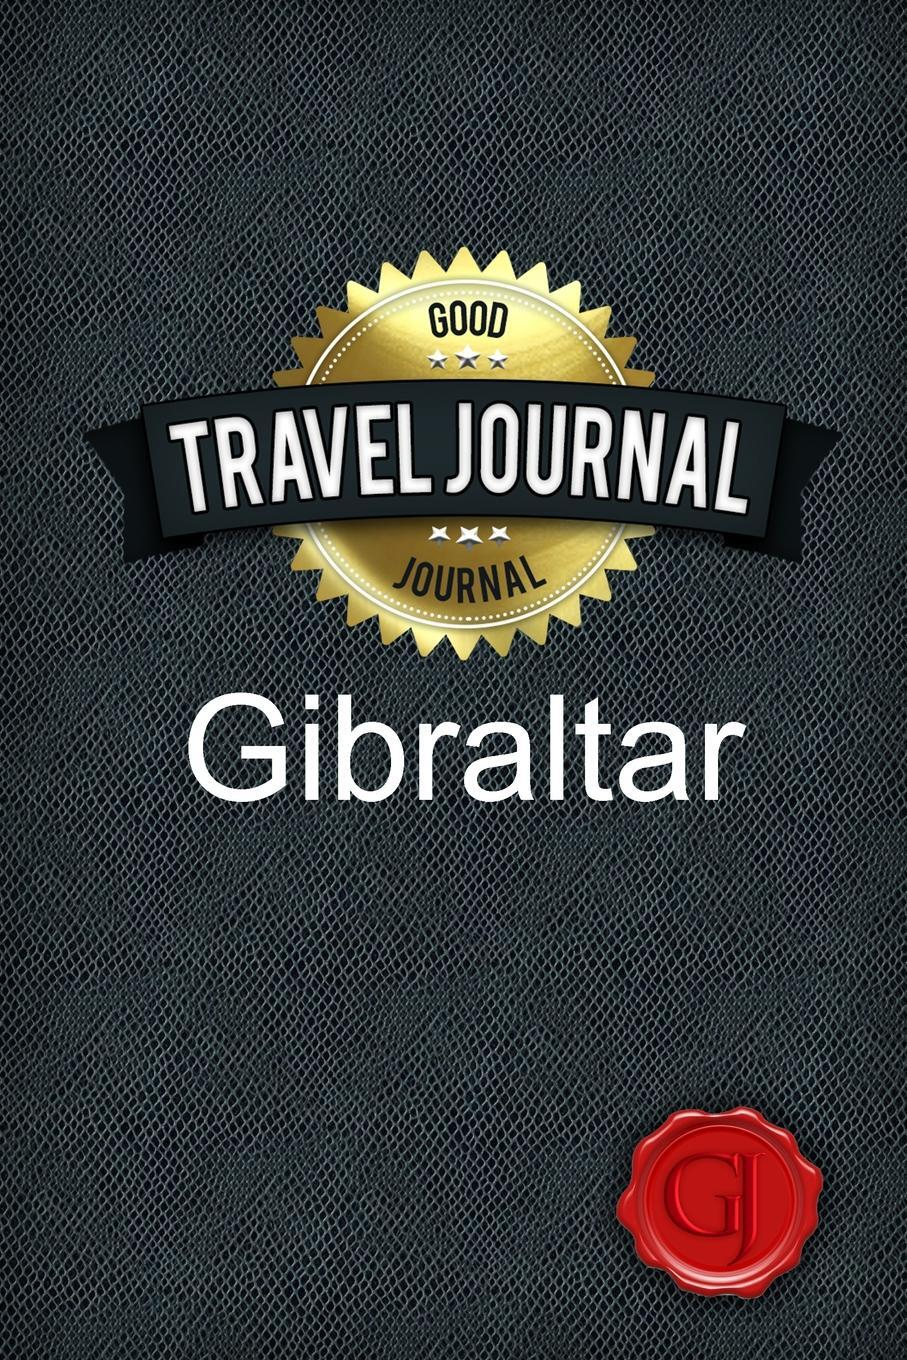 Travel Journal Gibraltar. Good Journal